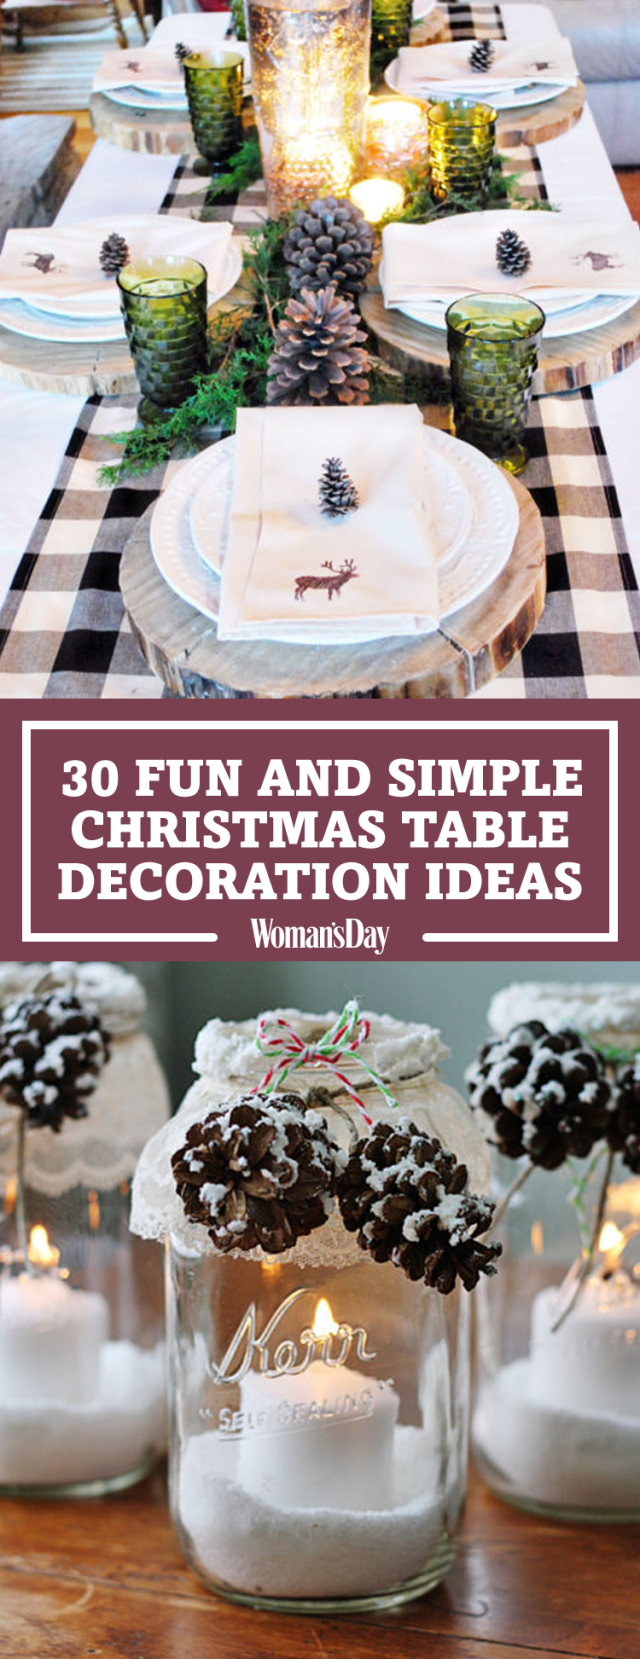 Christmas dessert table decoration ideas - 30 Christmas Table Decorations Centerpieces Ideas For Holiday Table Decor Woman S Day